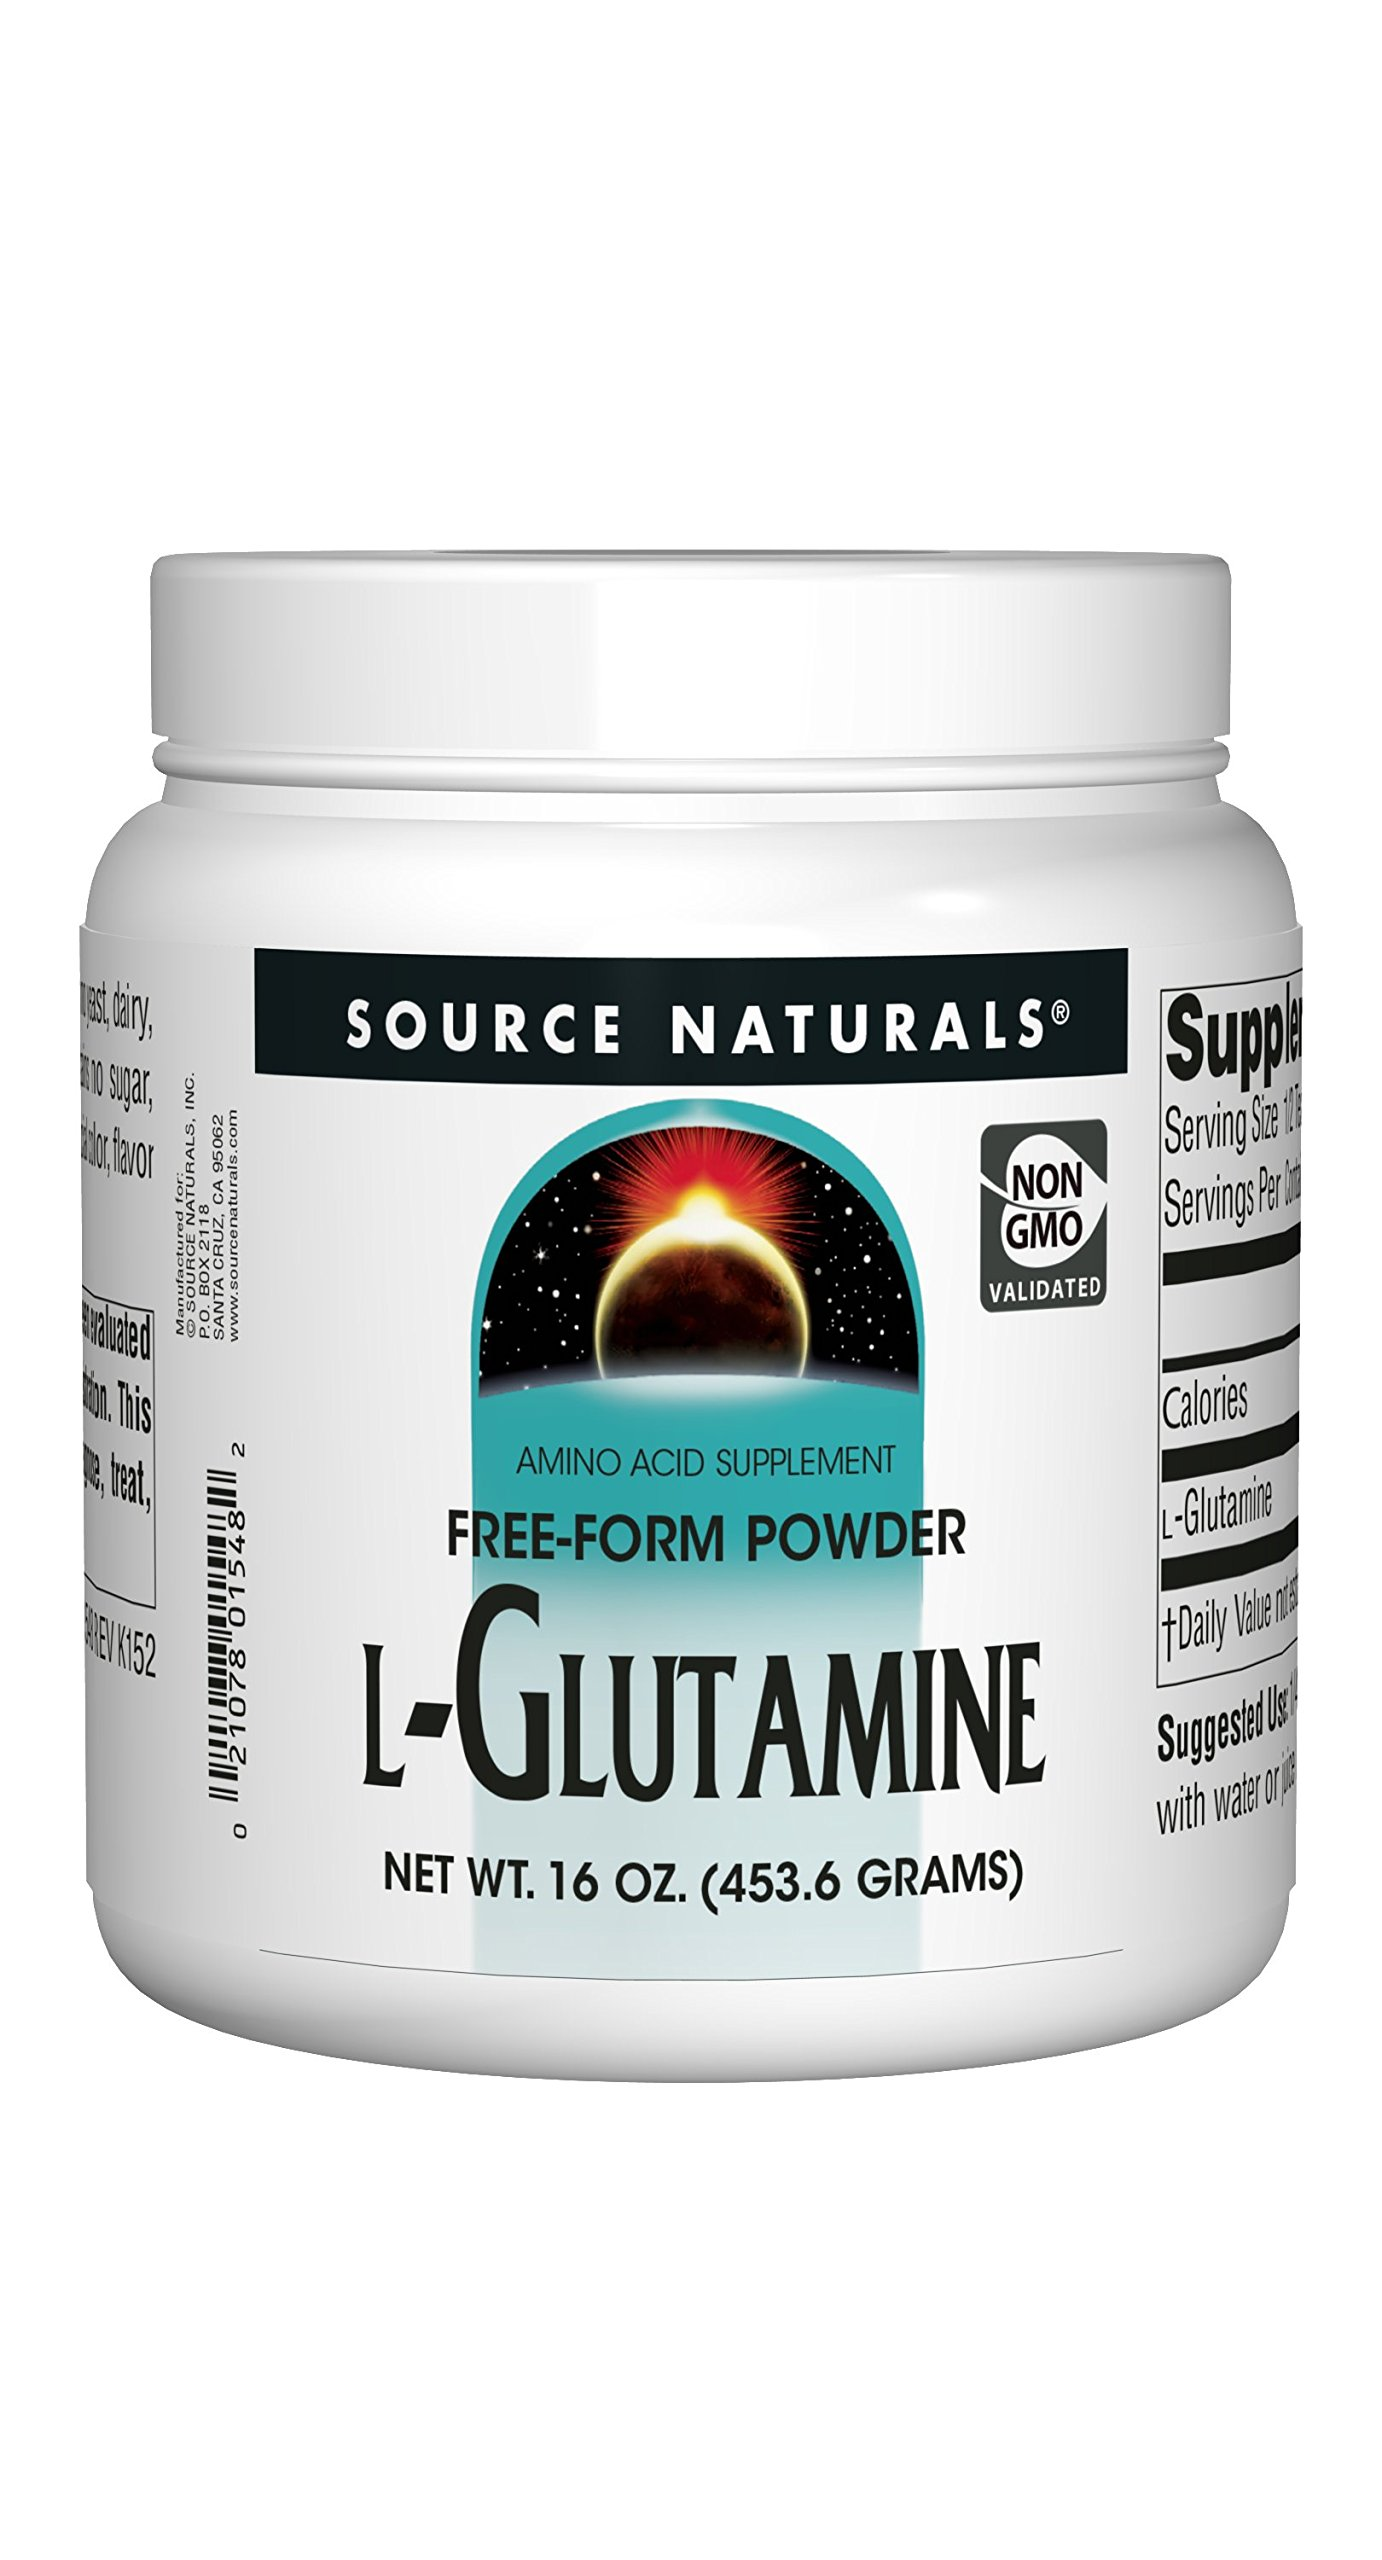 Source Naturals L-Glutamine Powder - Protein Synthesis Free Form Amino Acid - 16 oz by Source Naturals